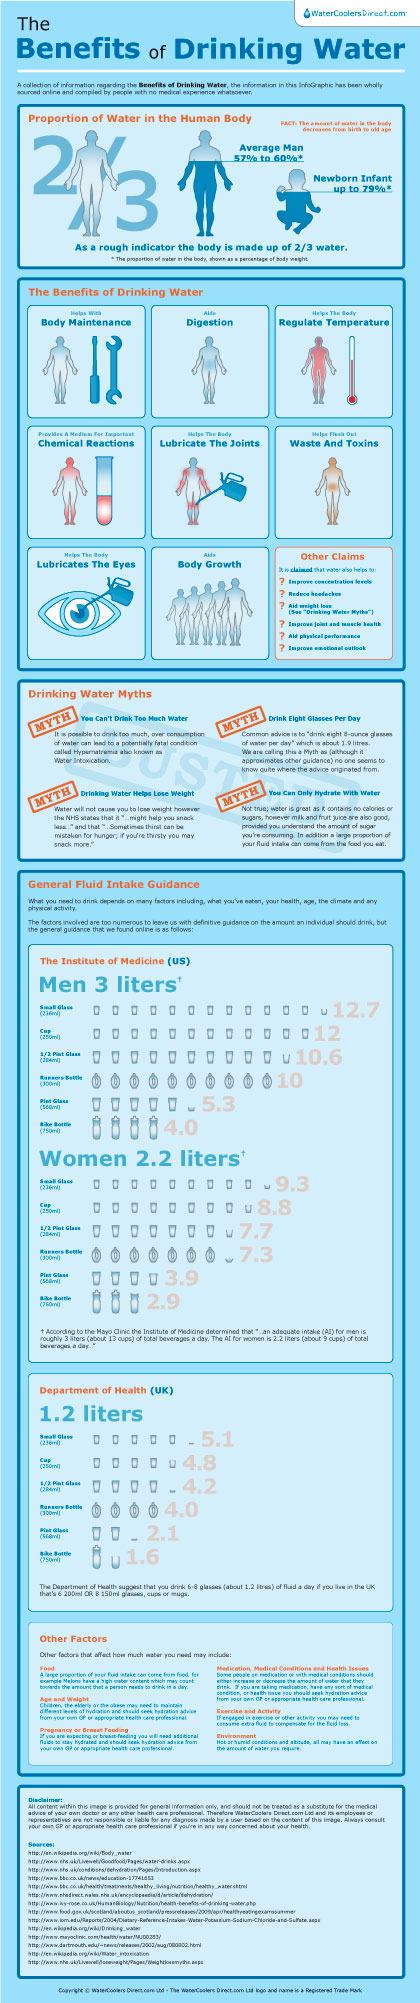 Benefits of Drinking Water - Free InfoGraphic